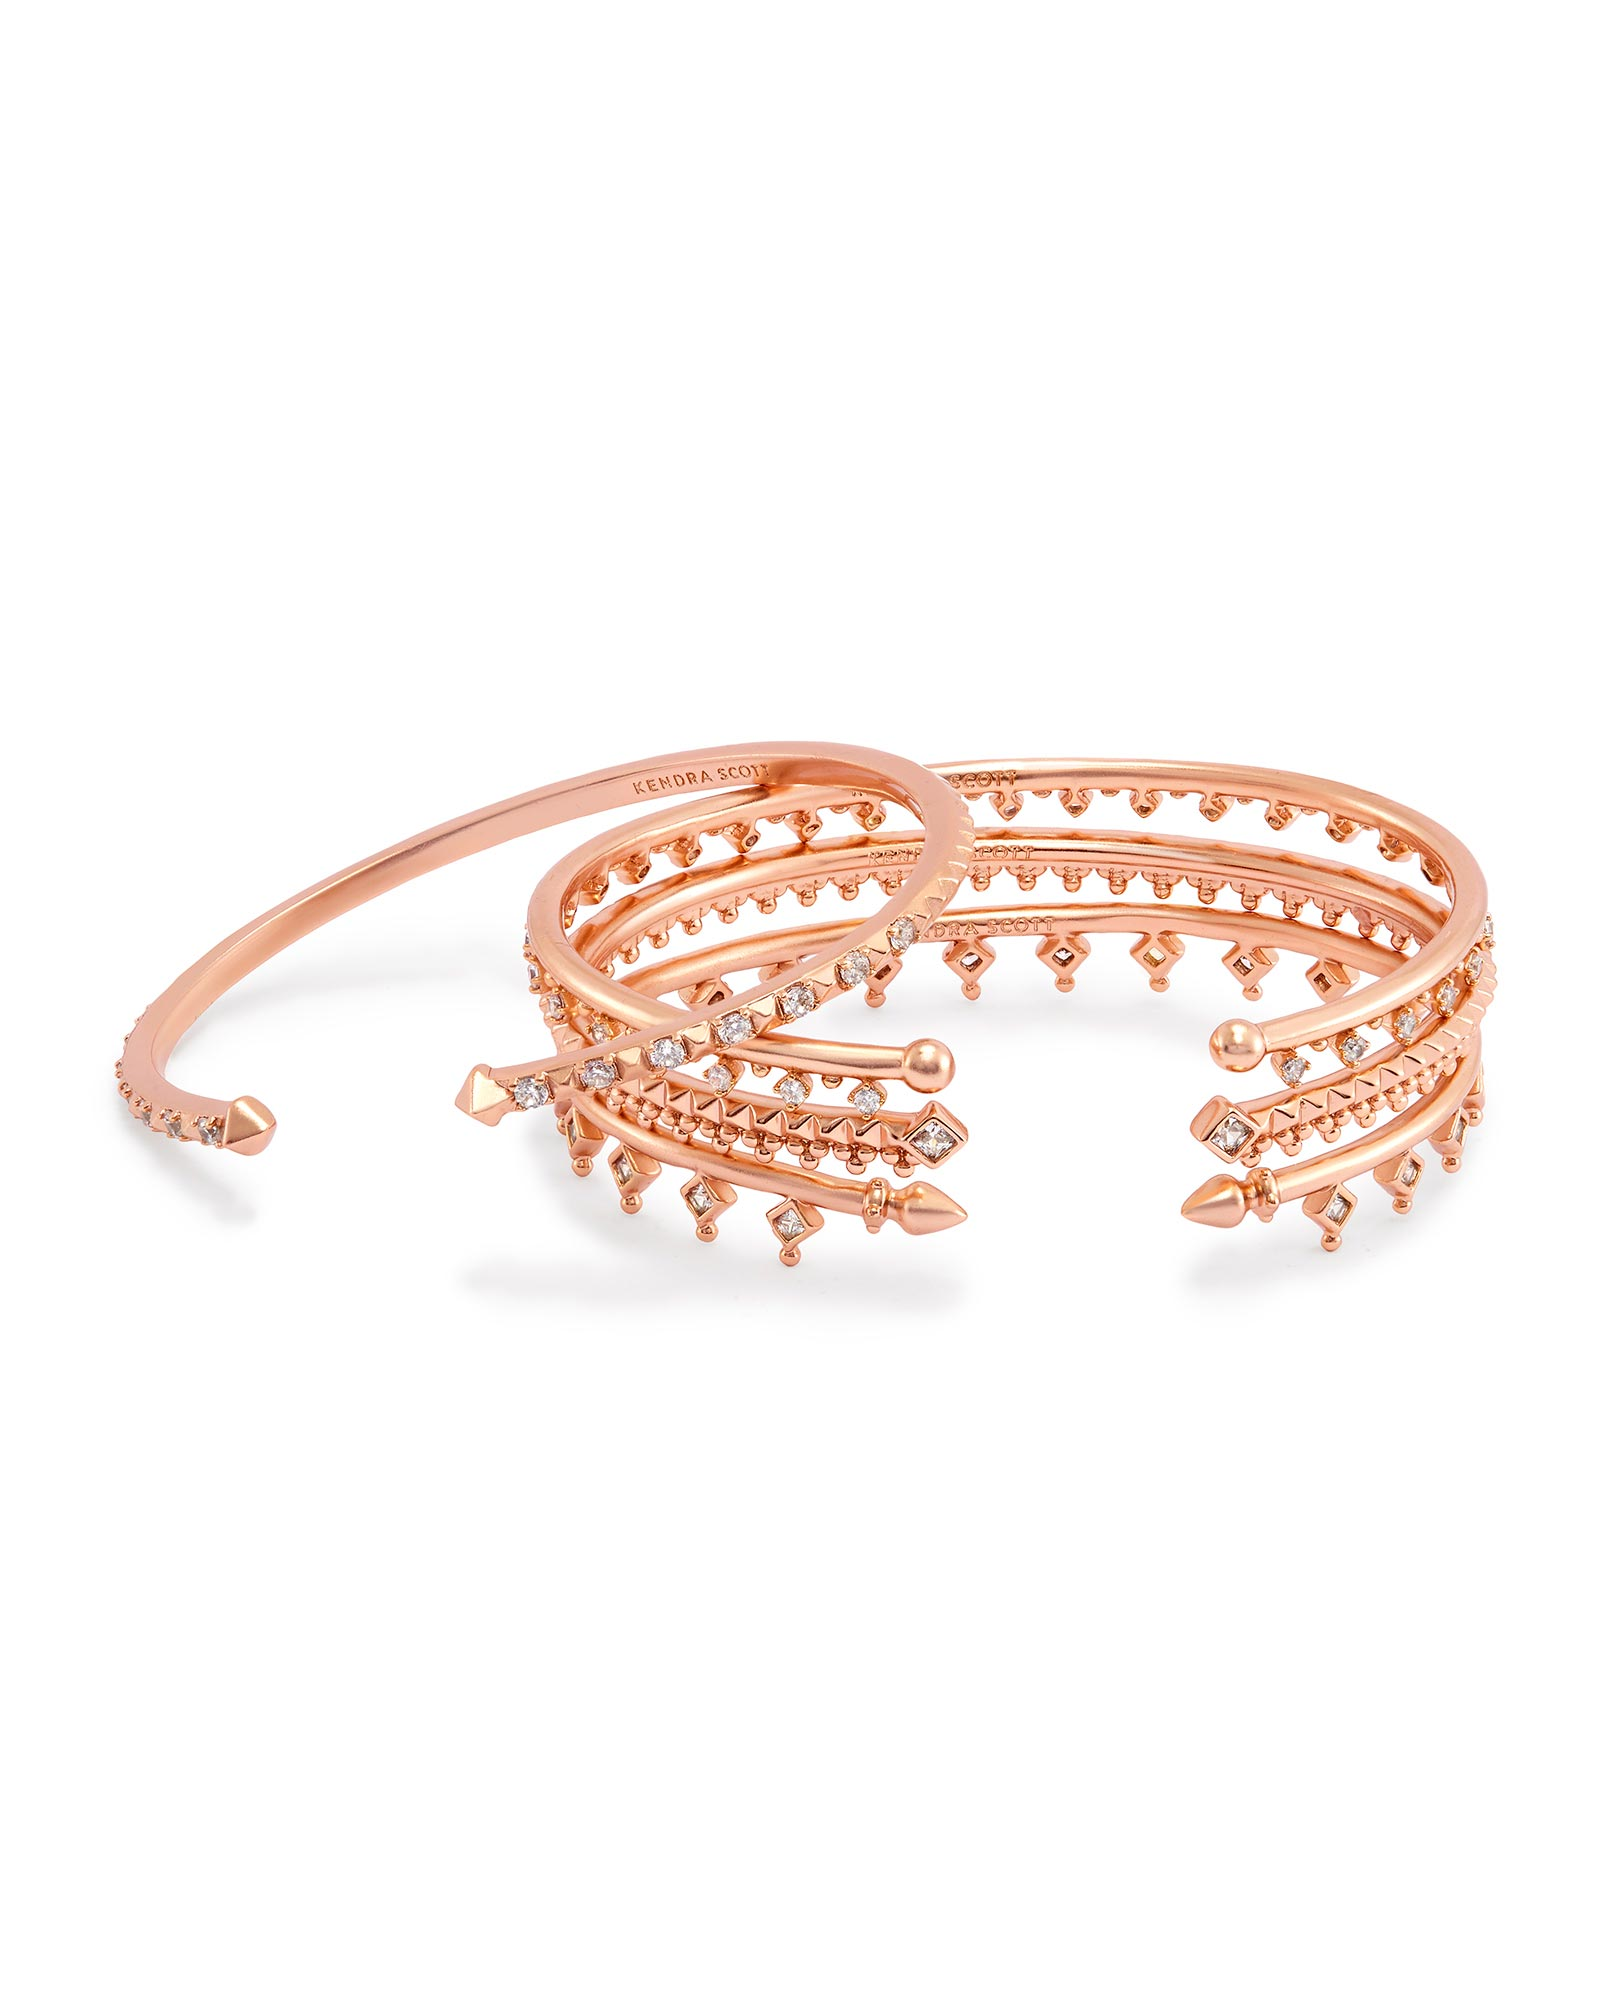 kendra-scott-delphine-rose-gold-pinch-bracelet-set_00_default_lg.jpg